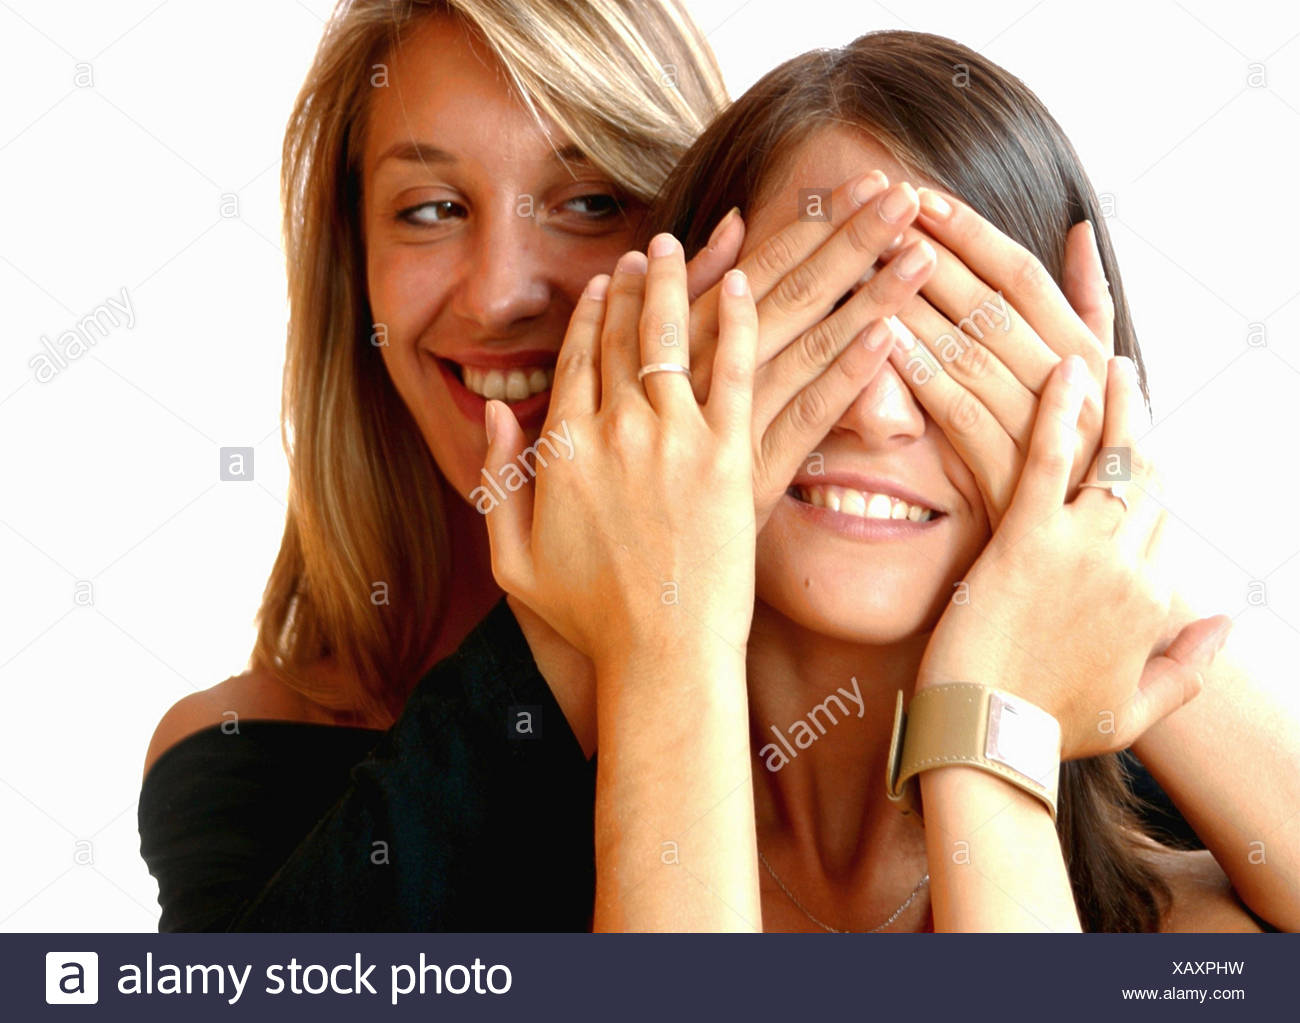 a blond and a brunette young women playing peekaboo - Stock Image